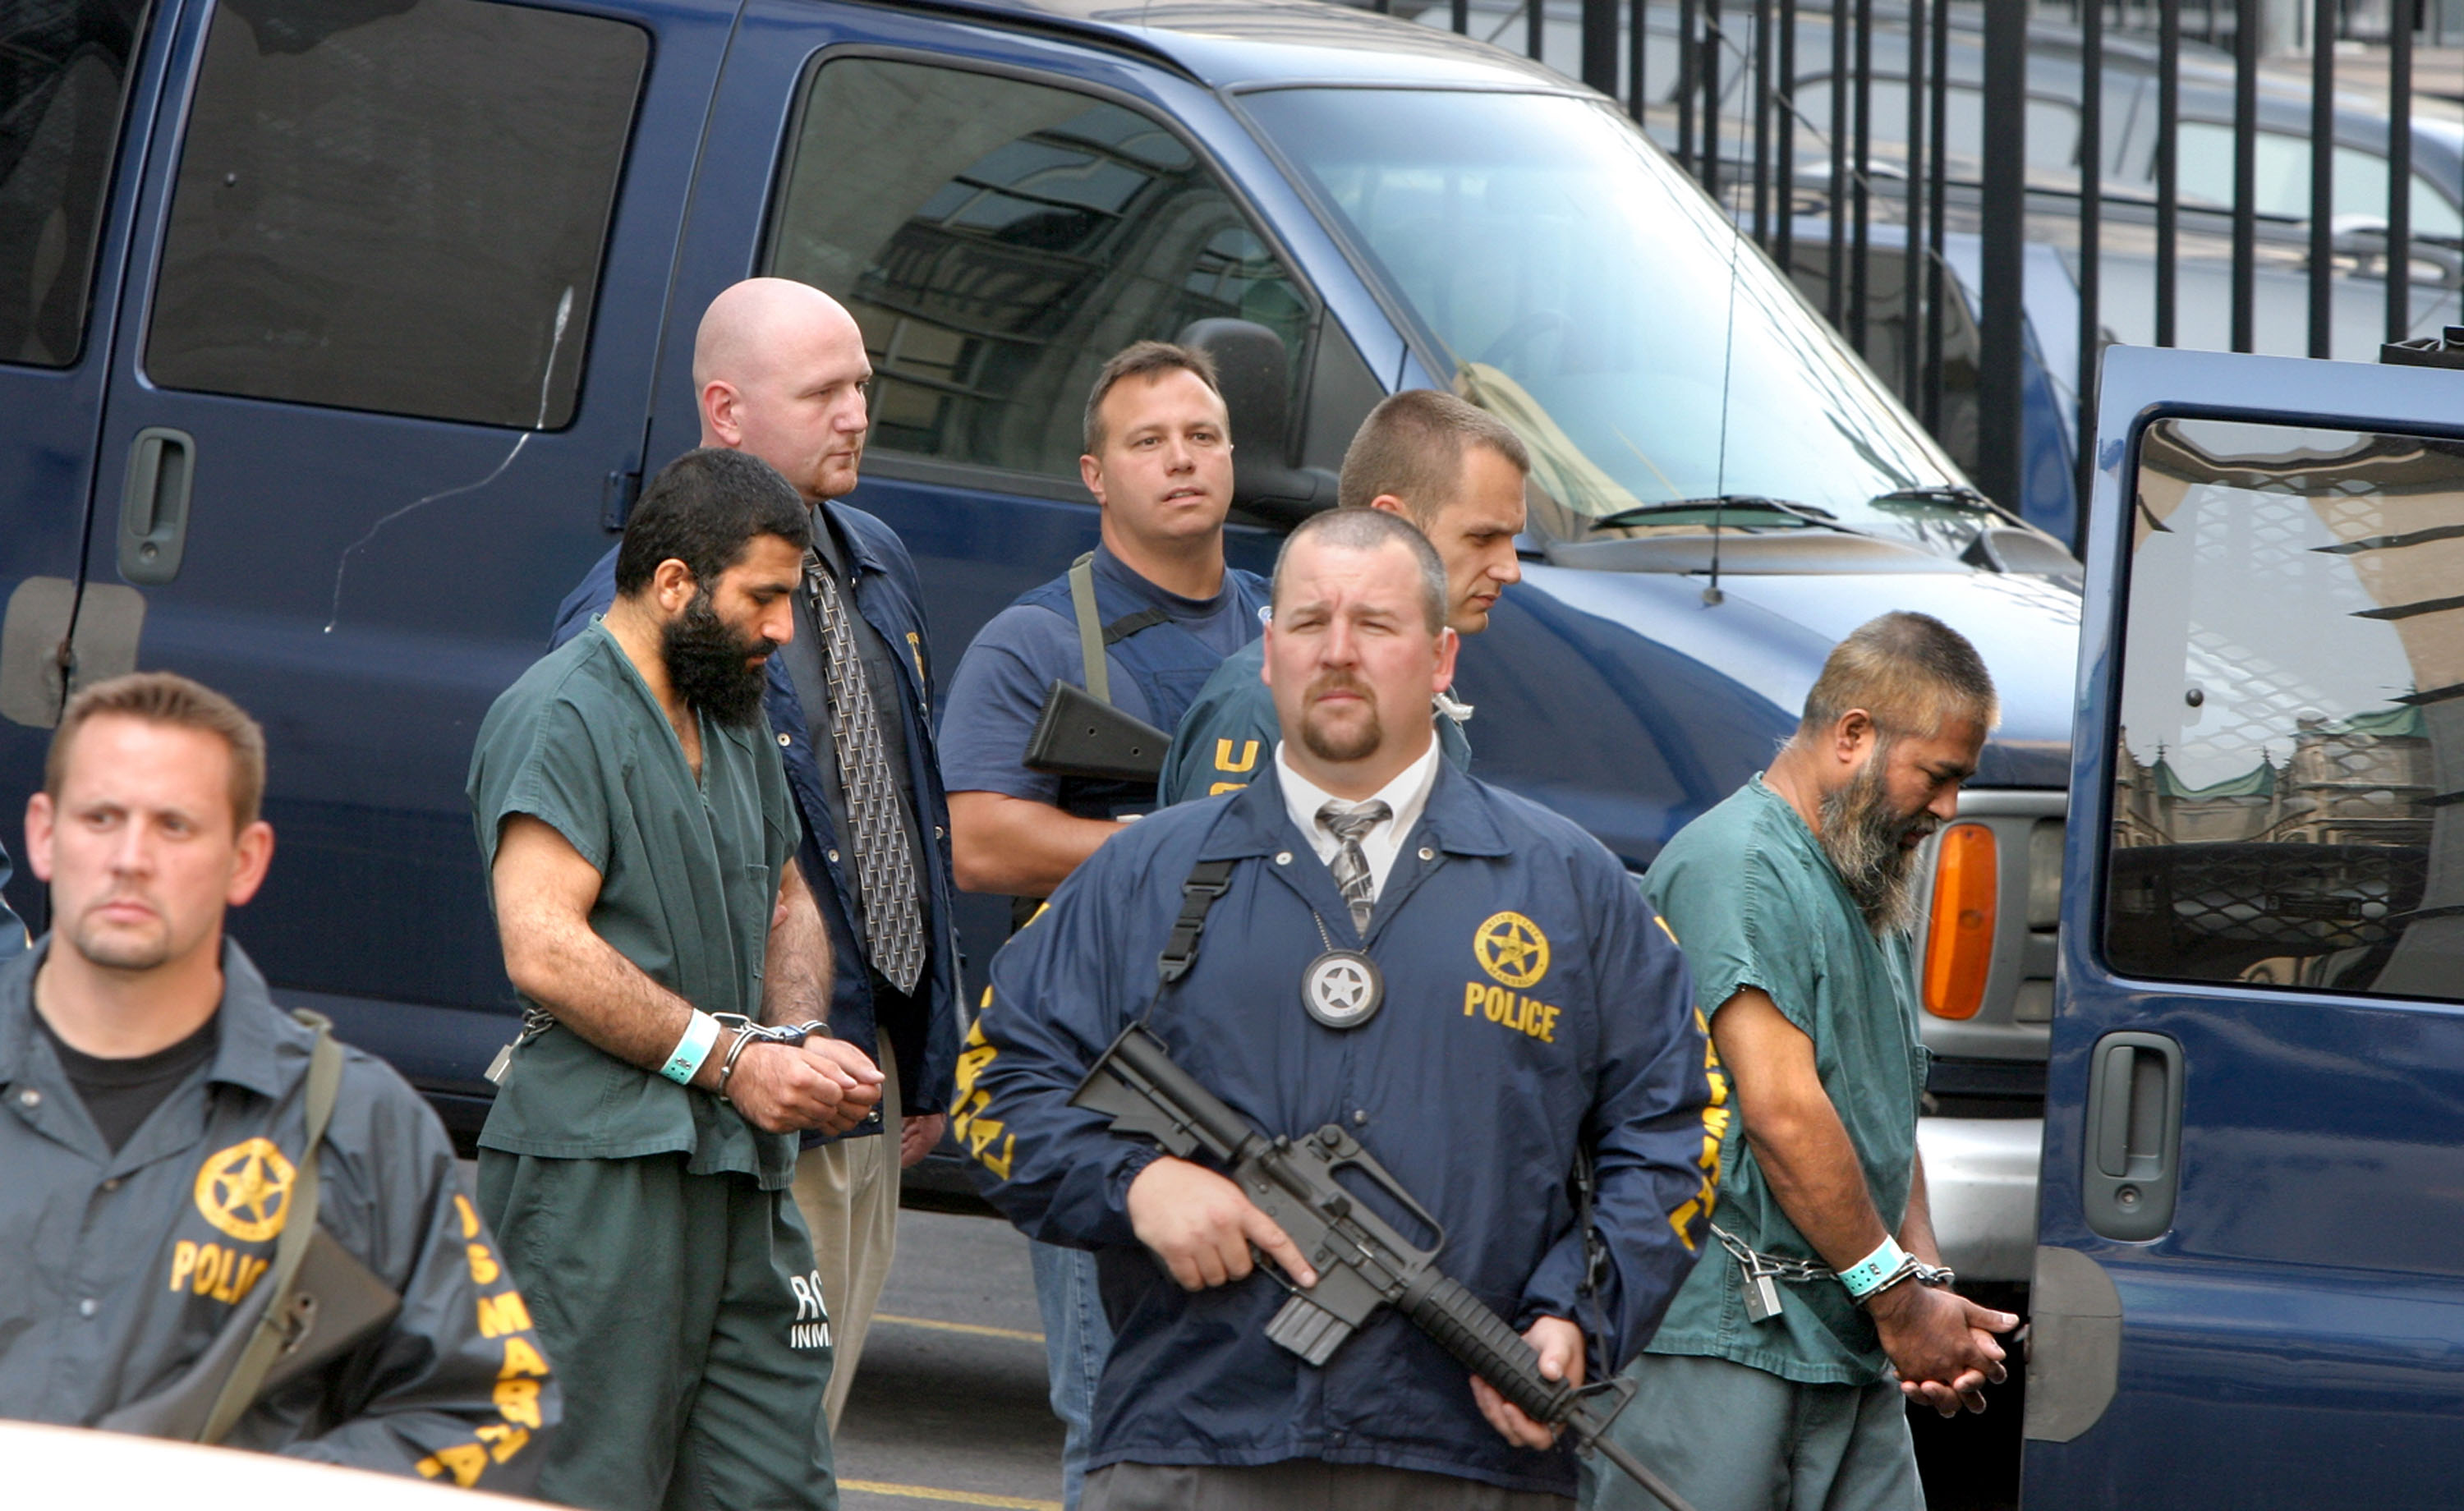 Albany Terror Suspects In Court